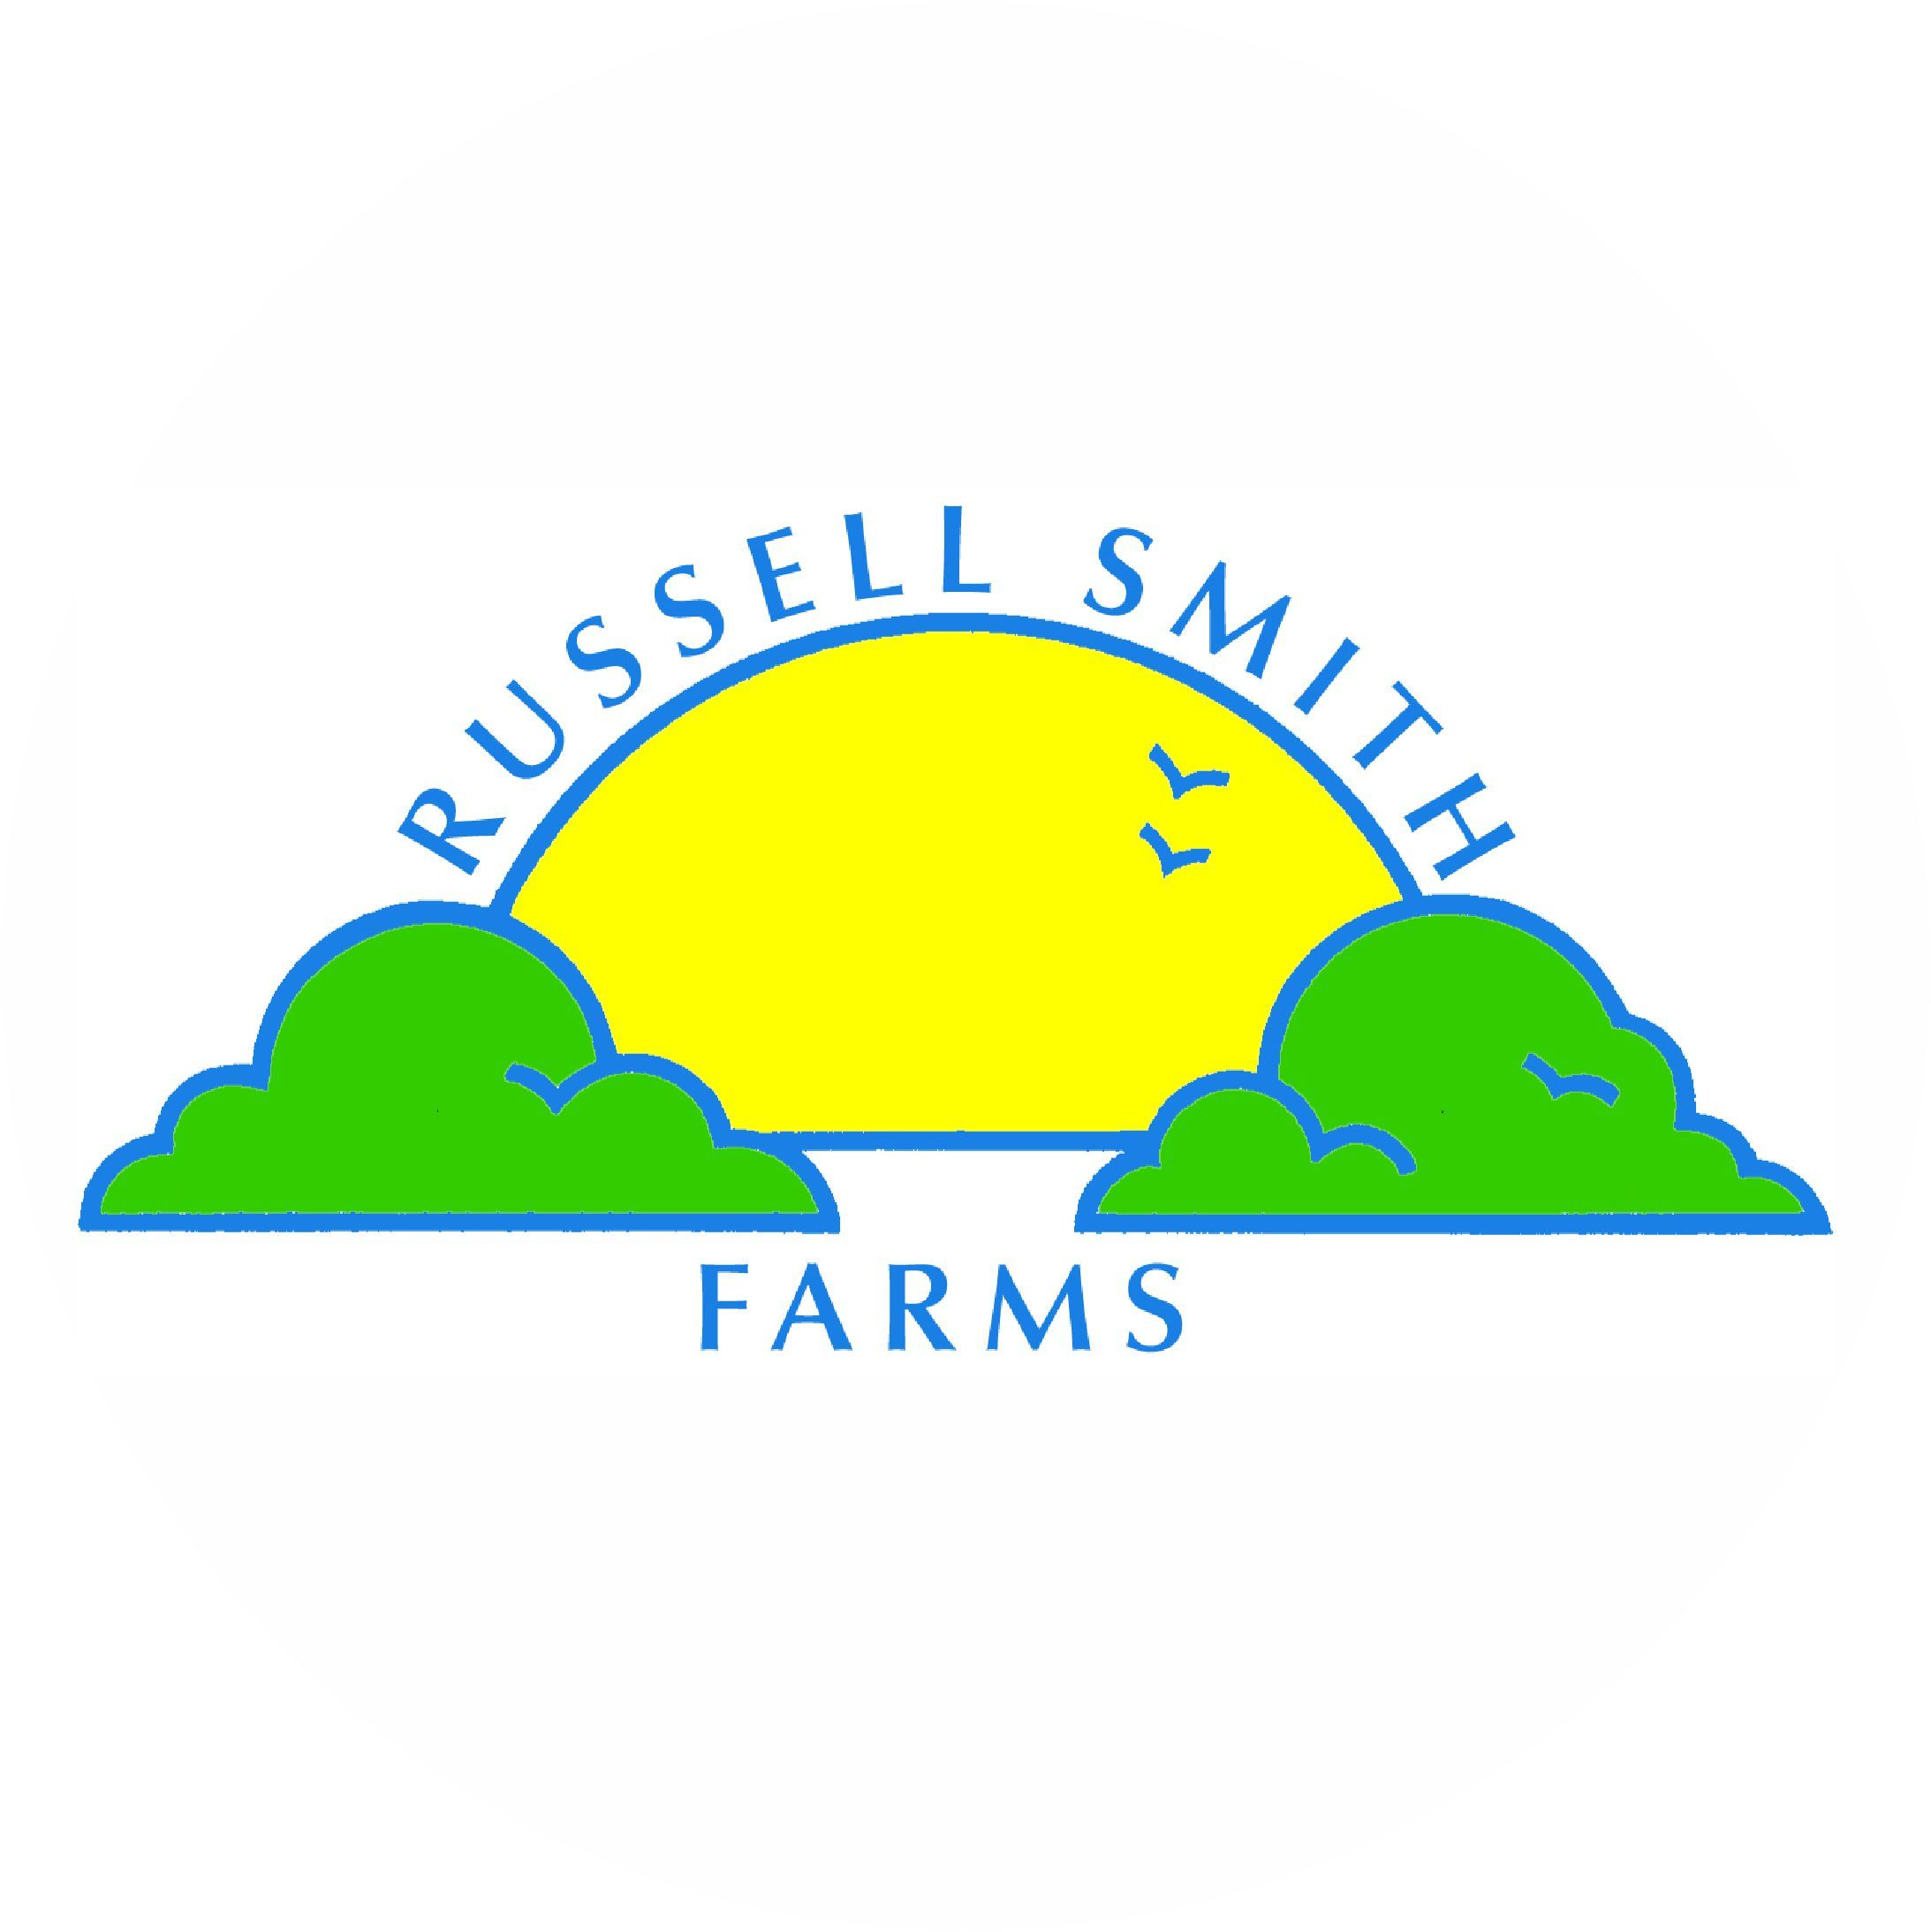 Colette- Russell Smith Farms